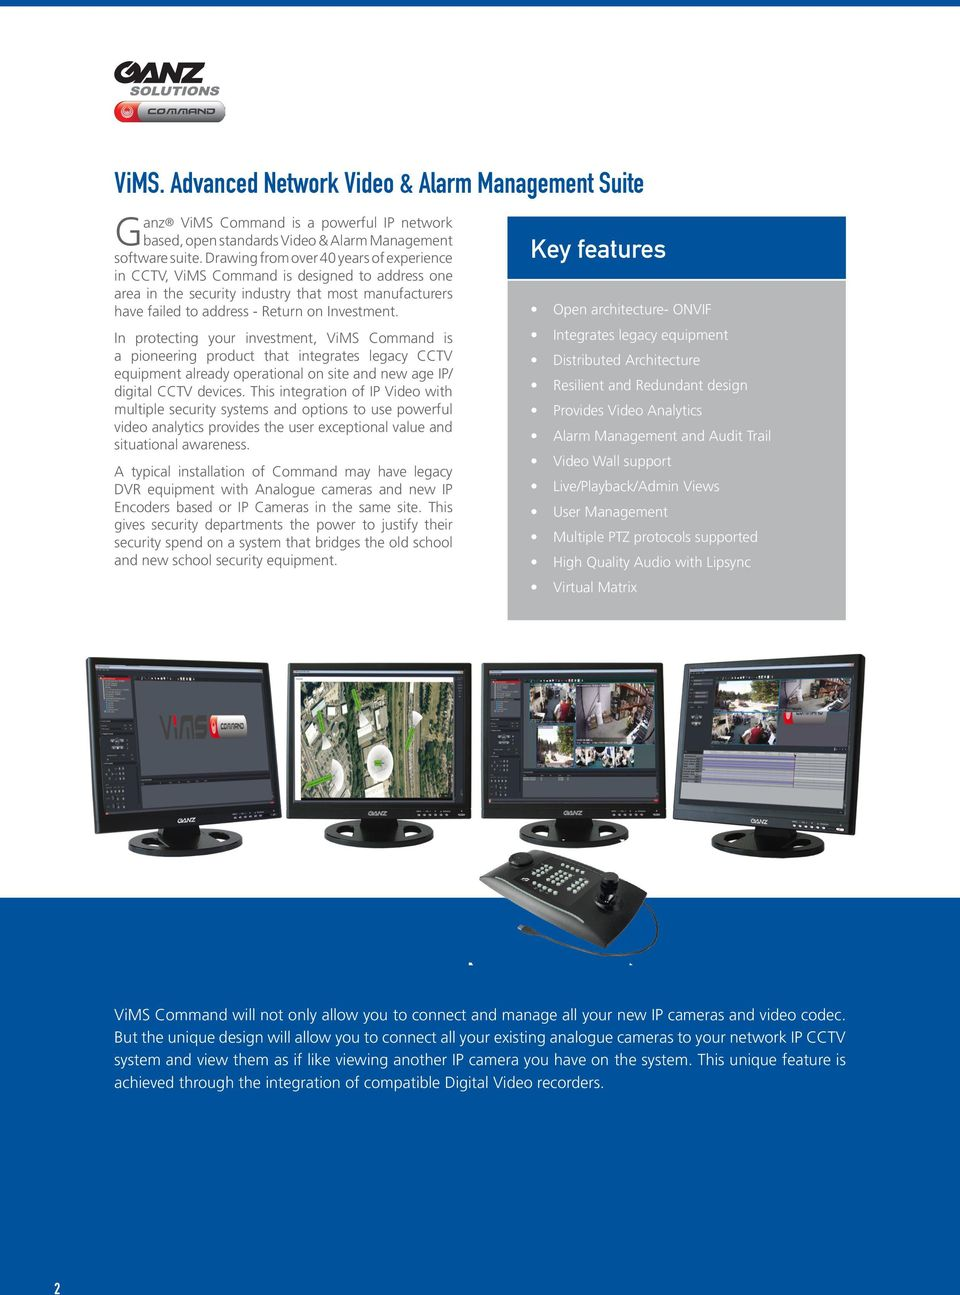 In protecting your investment, ViMS Command is a pioneering product that integrates legacy CCTV equipment already operational on site and new age IP/ digital CCTV devices.